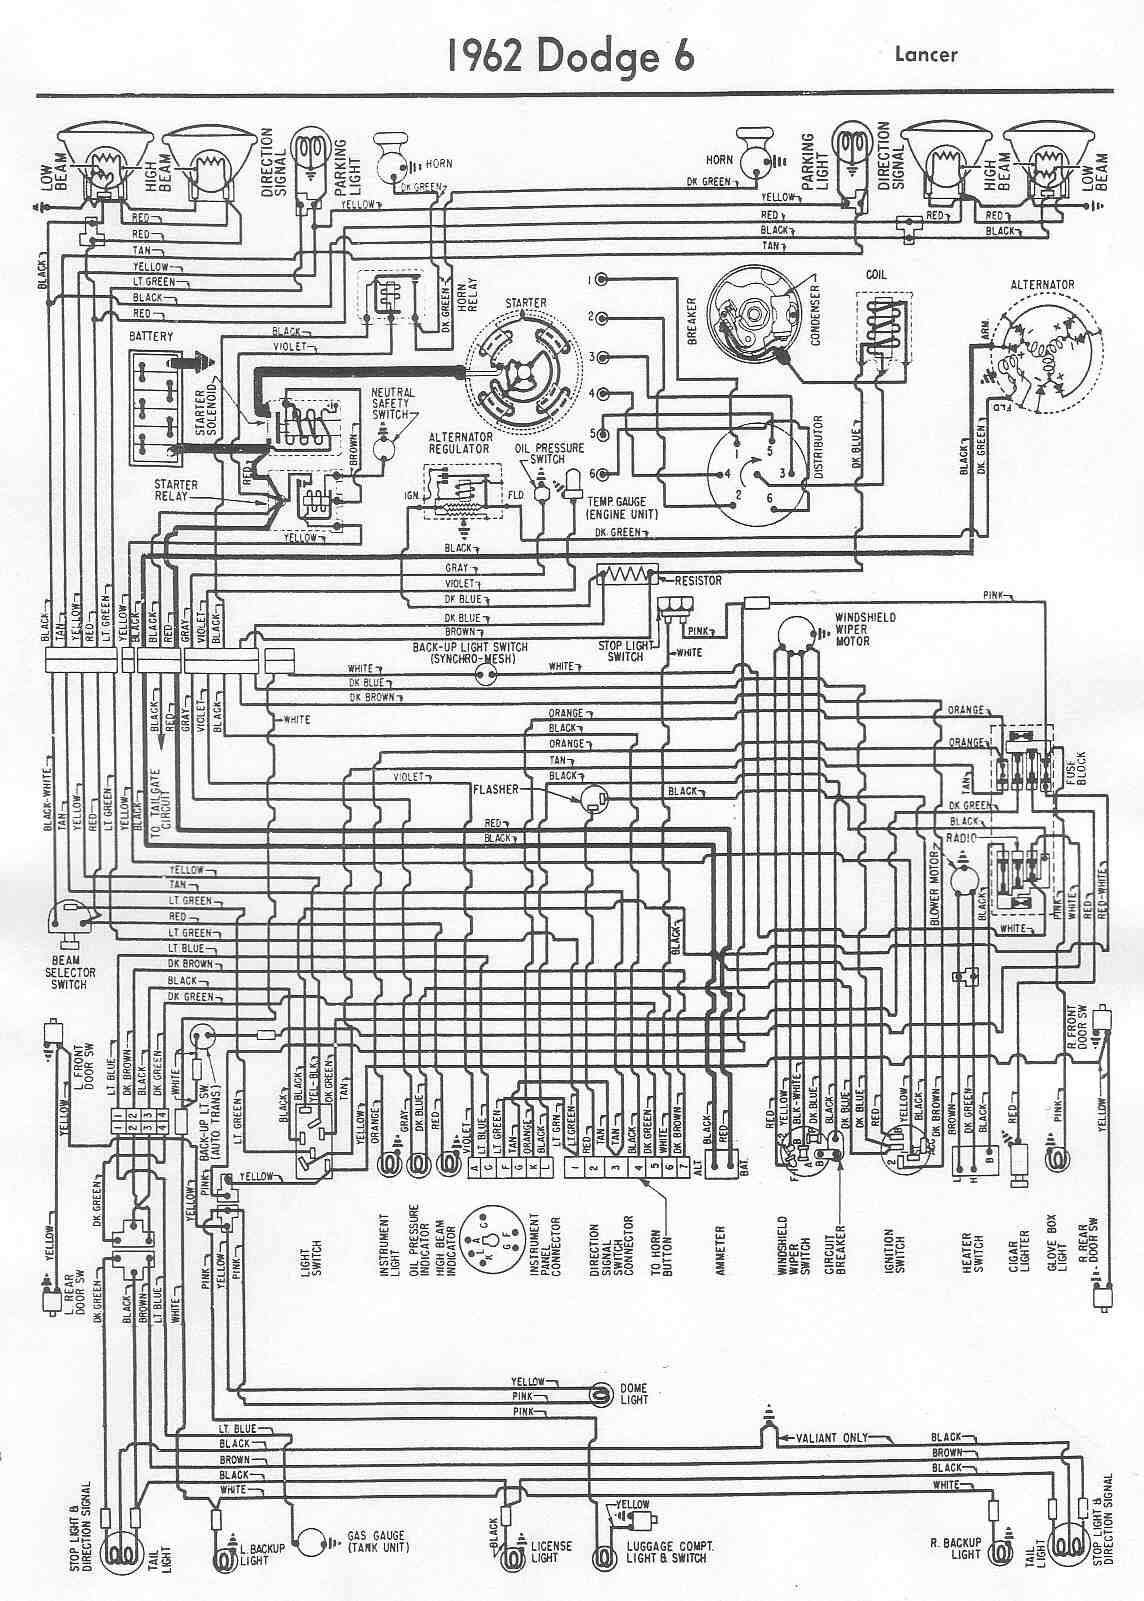 Dodge Car Manuals Wiring Diagrams Pdf Fault Codes 1993 Acura Legend Diagram Download